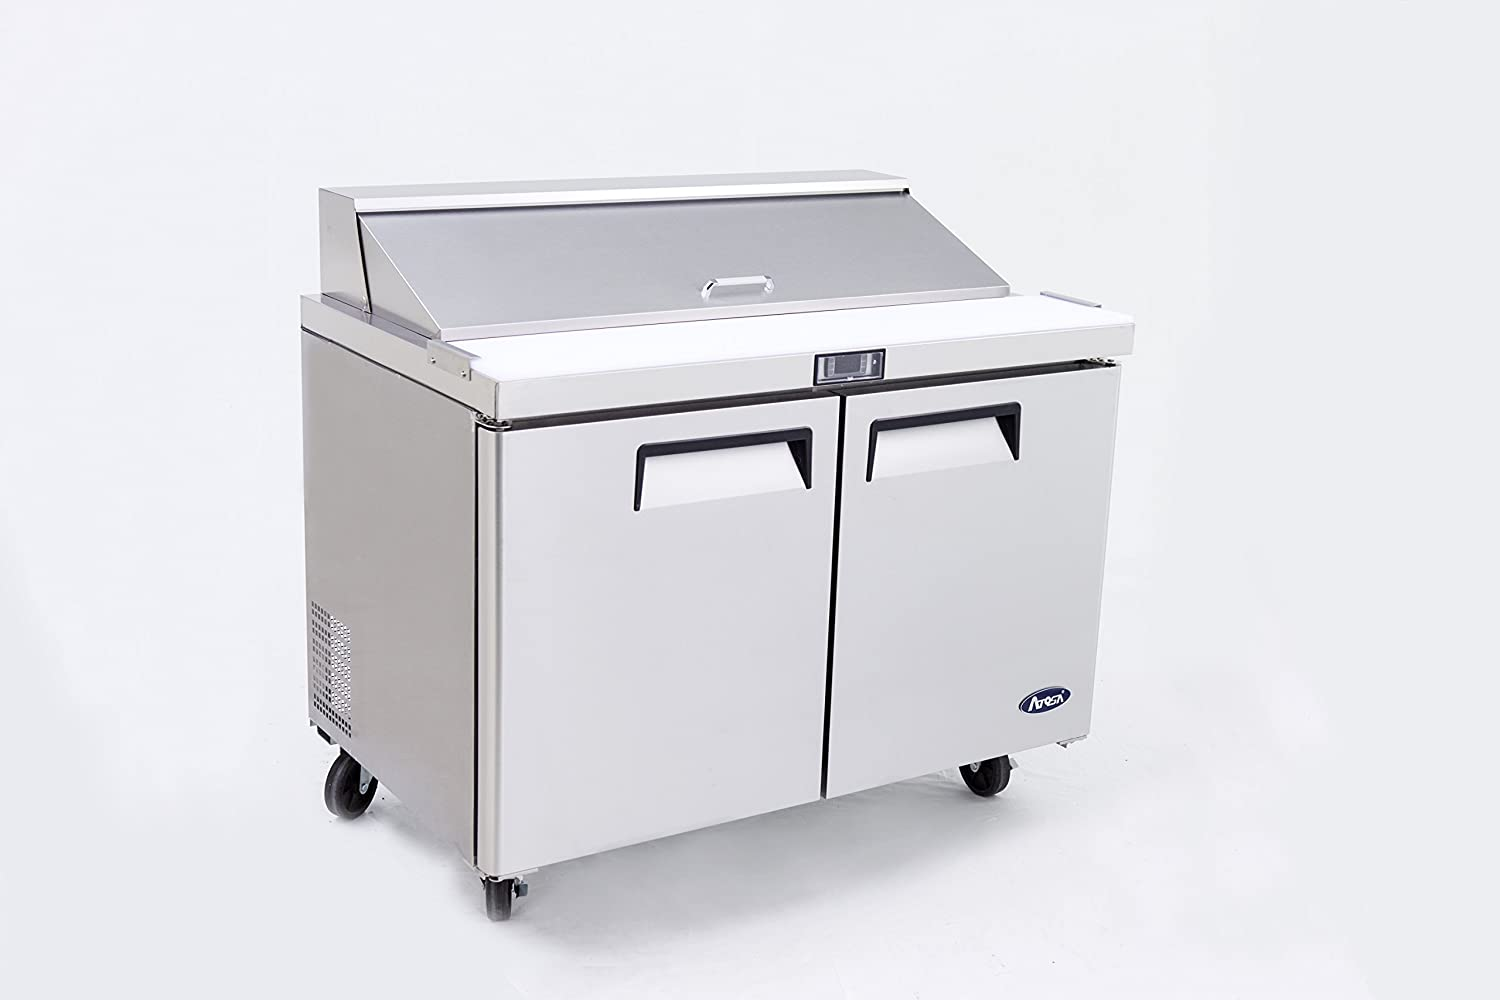 "Atosa Usa MSF8302 Stainless Steel Sandwich Prep Table 48"" 2-Door Refrigerator"